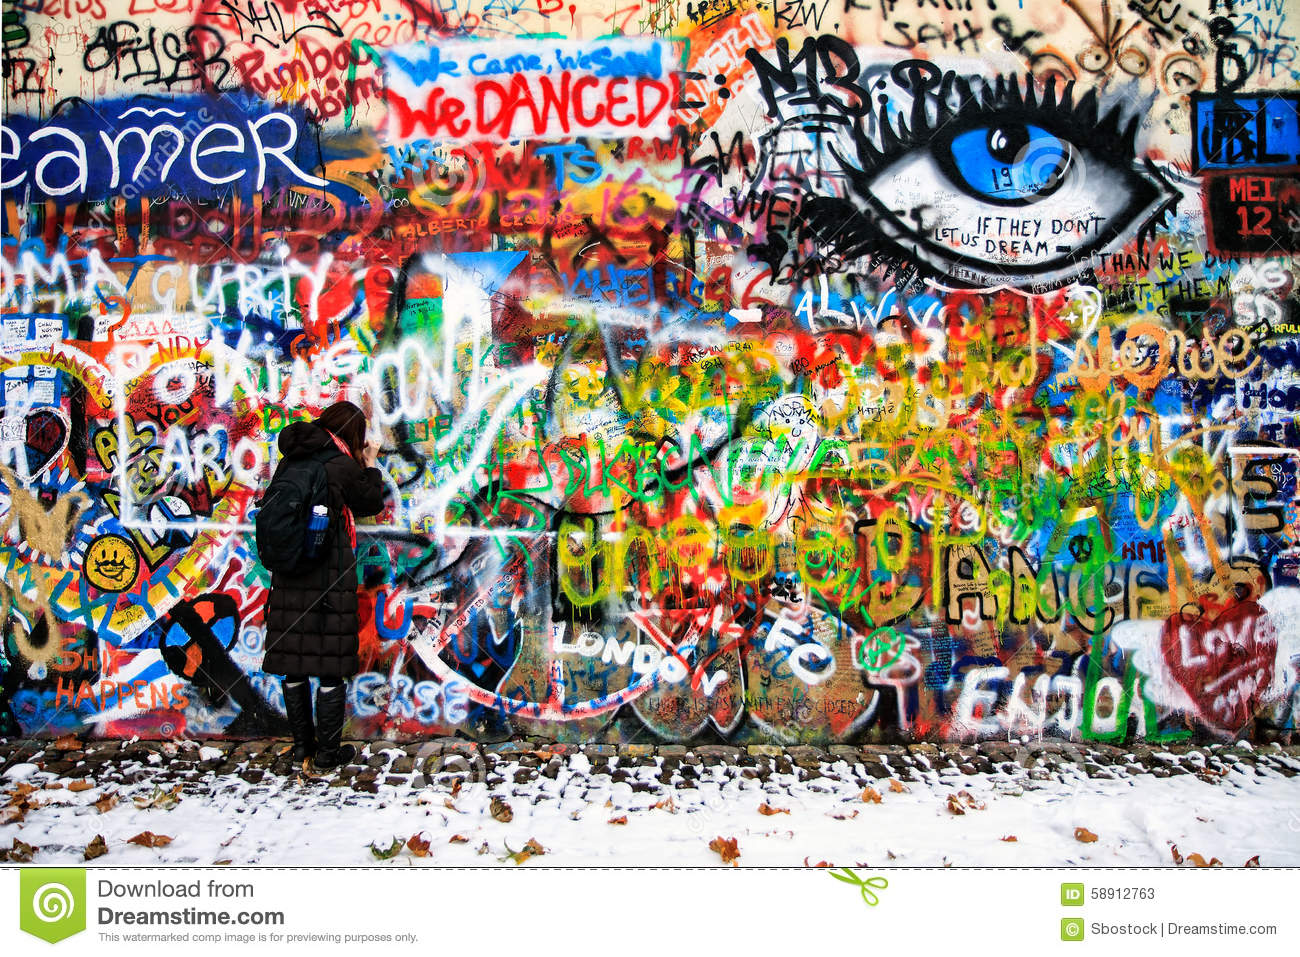 The lennon wall since the 1980s filled with john lennon inspired graffiti and pieces of lyrics from beatles songs prague czech republic